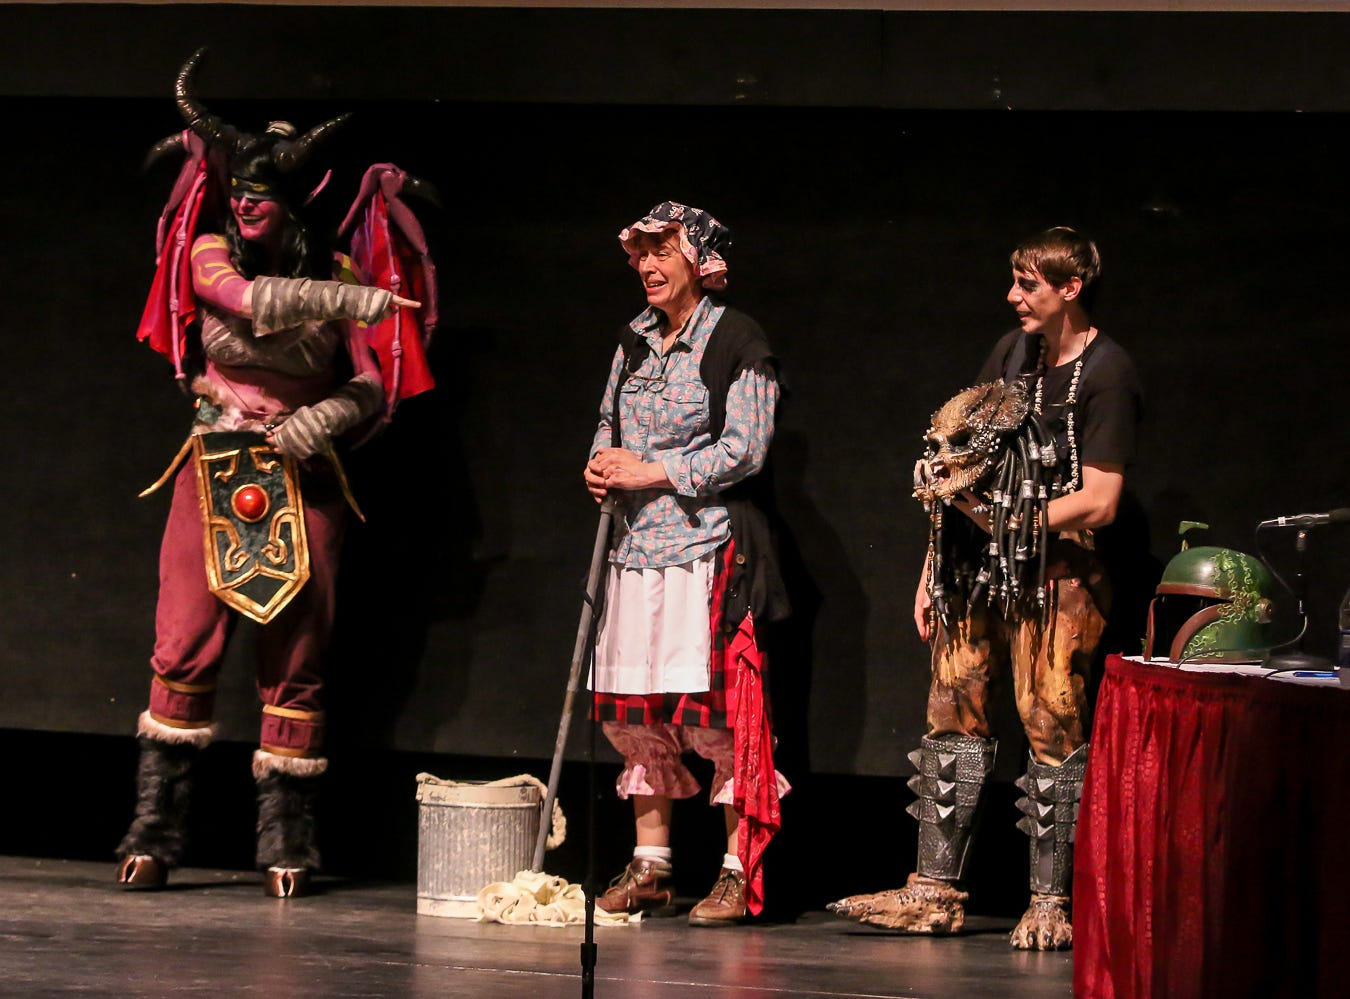 The honorable mention winners in the Novice Division of the Pensacon cosplay contest presented by McGuire's Irish Pub at the Saenger Theatre on Saturday, February 23, 2019.